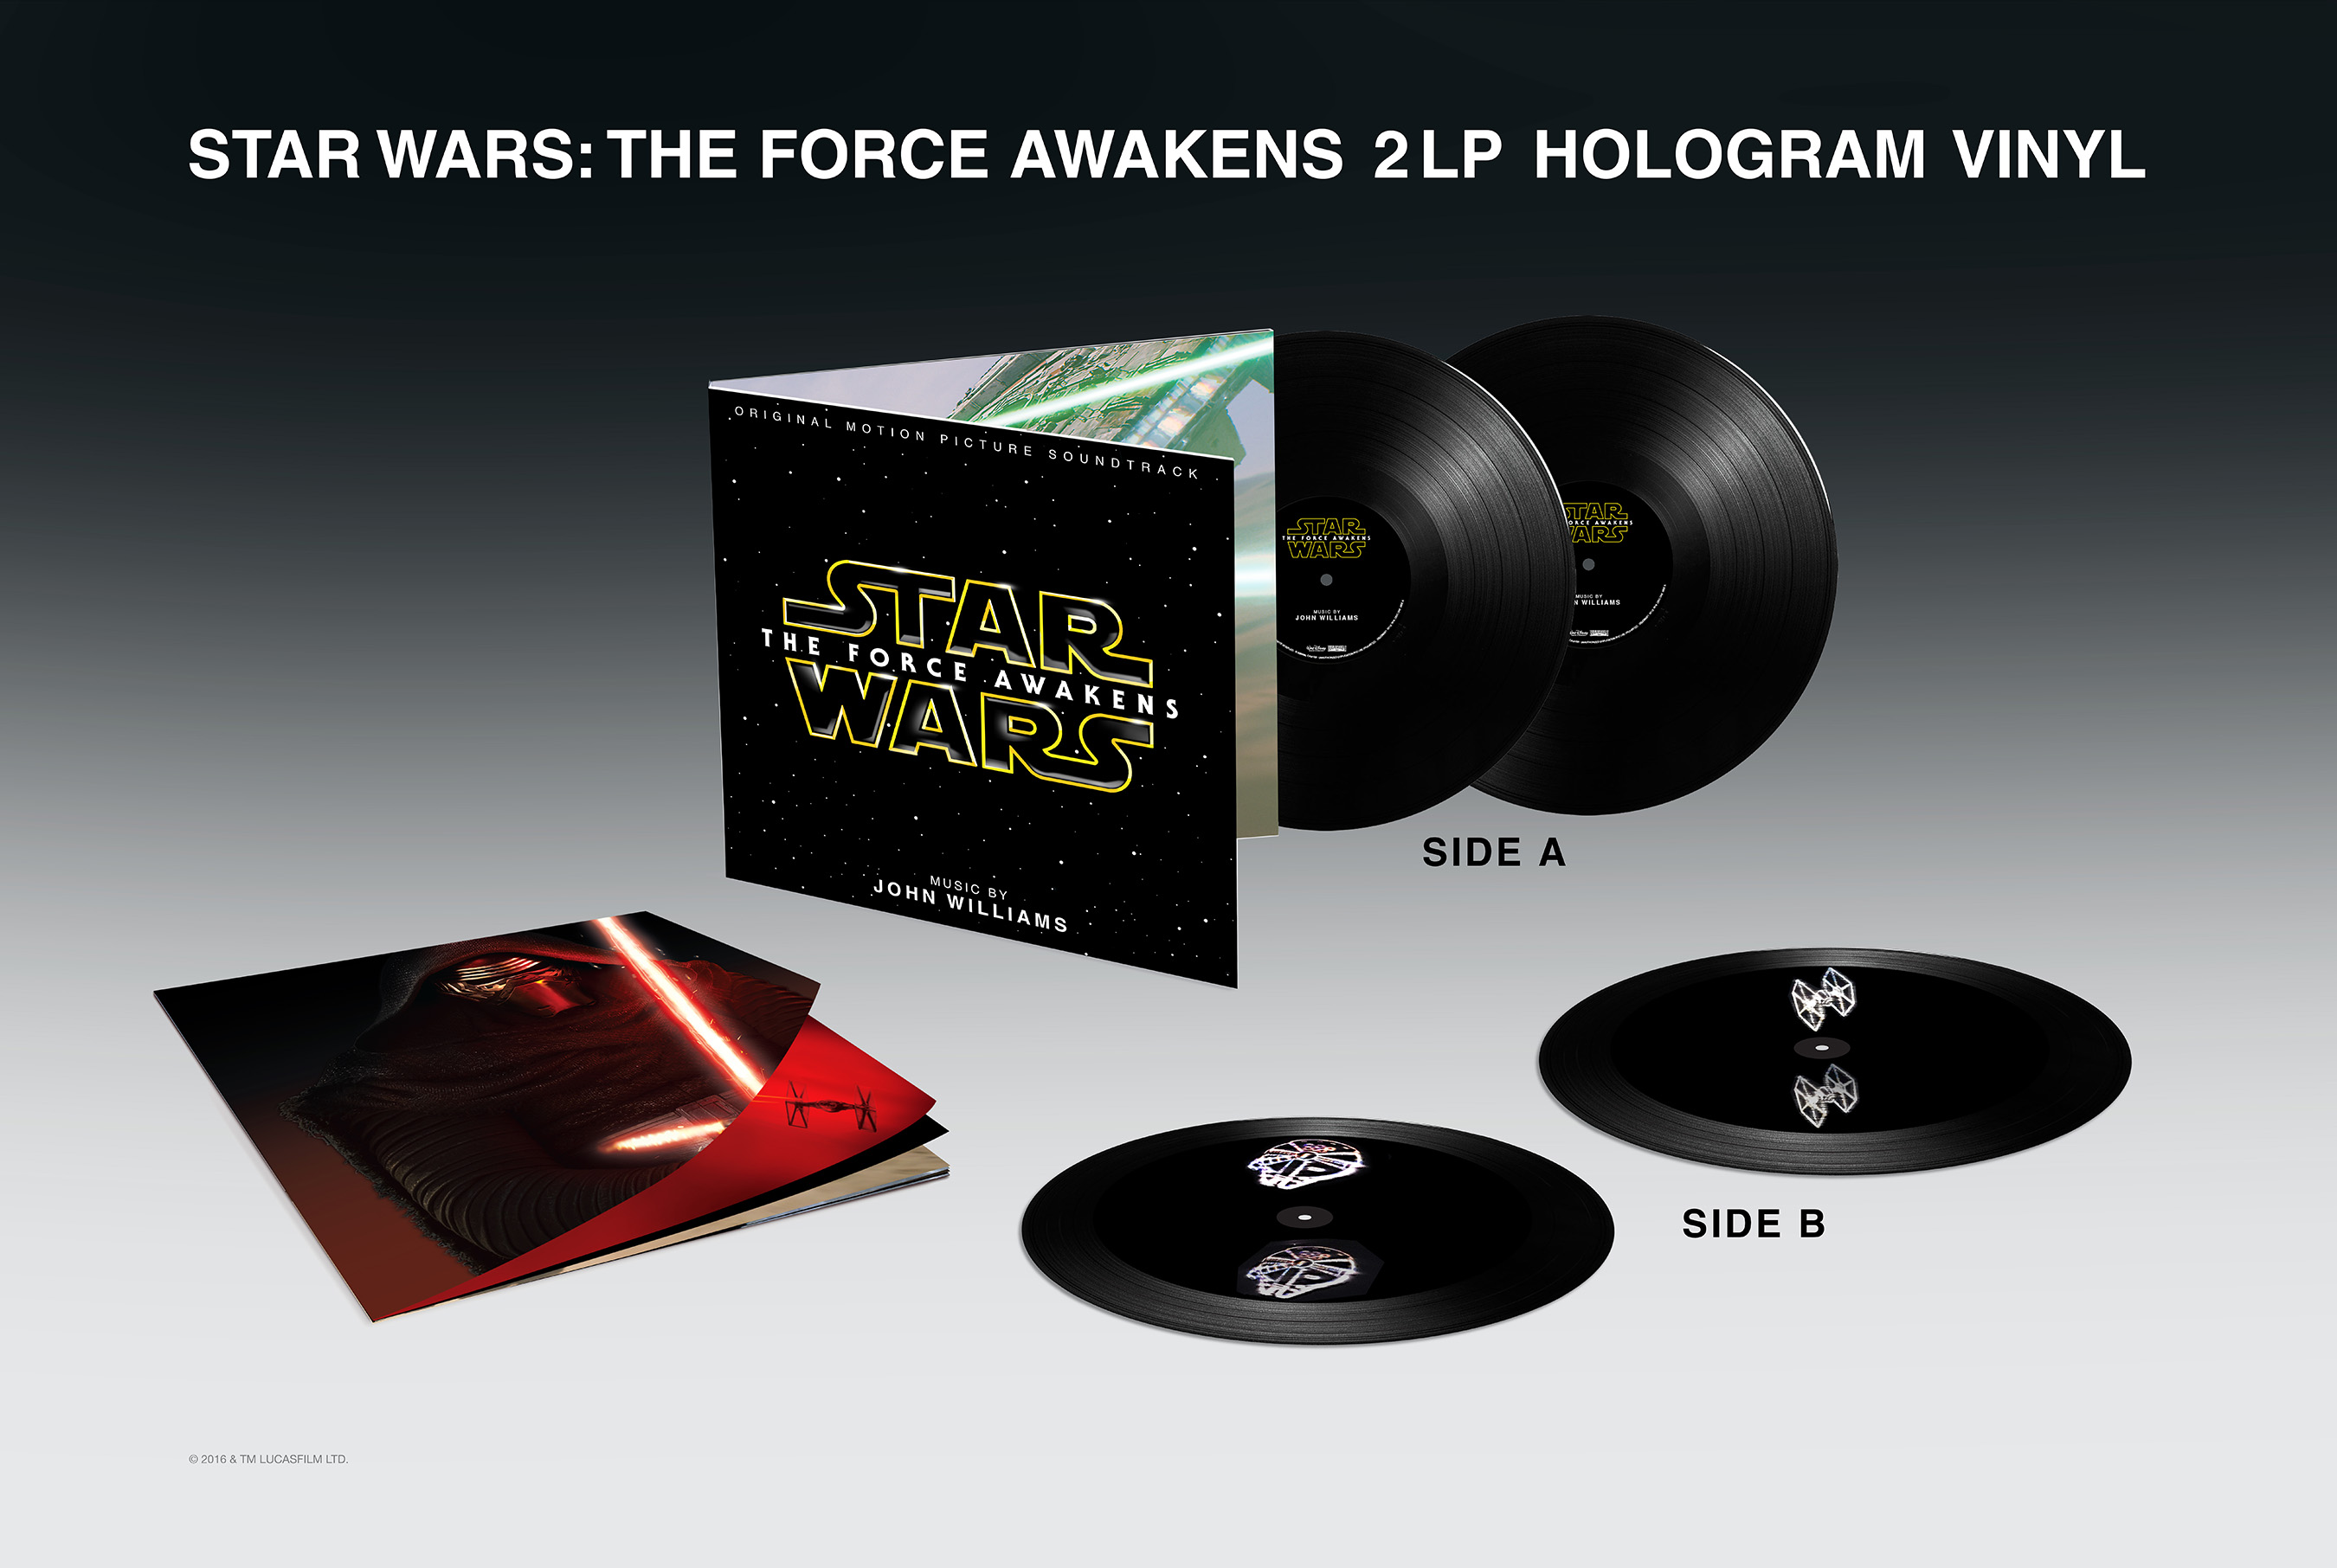 Star Wars: The Force Awakens Soundtrack 2 LP Hologram Vinyl with title